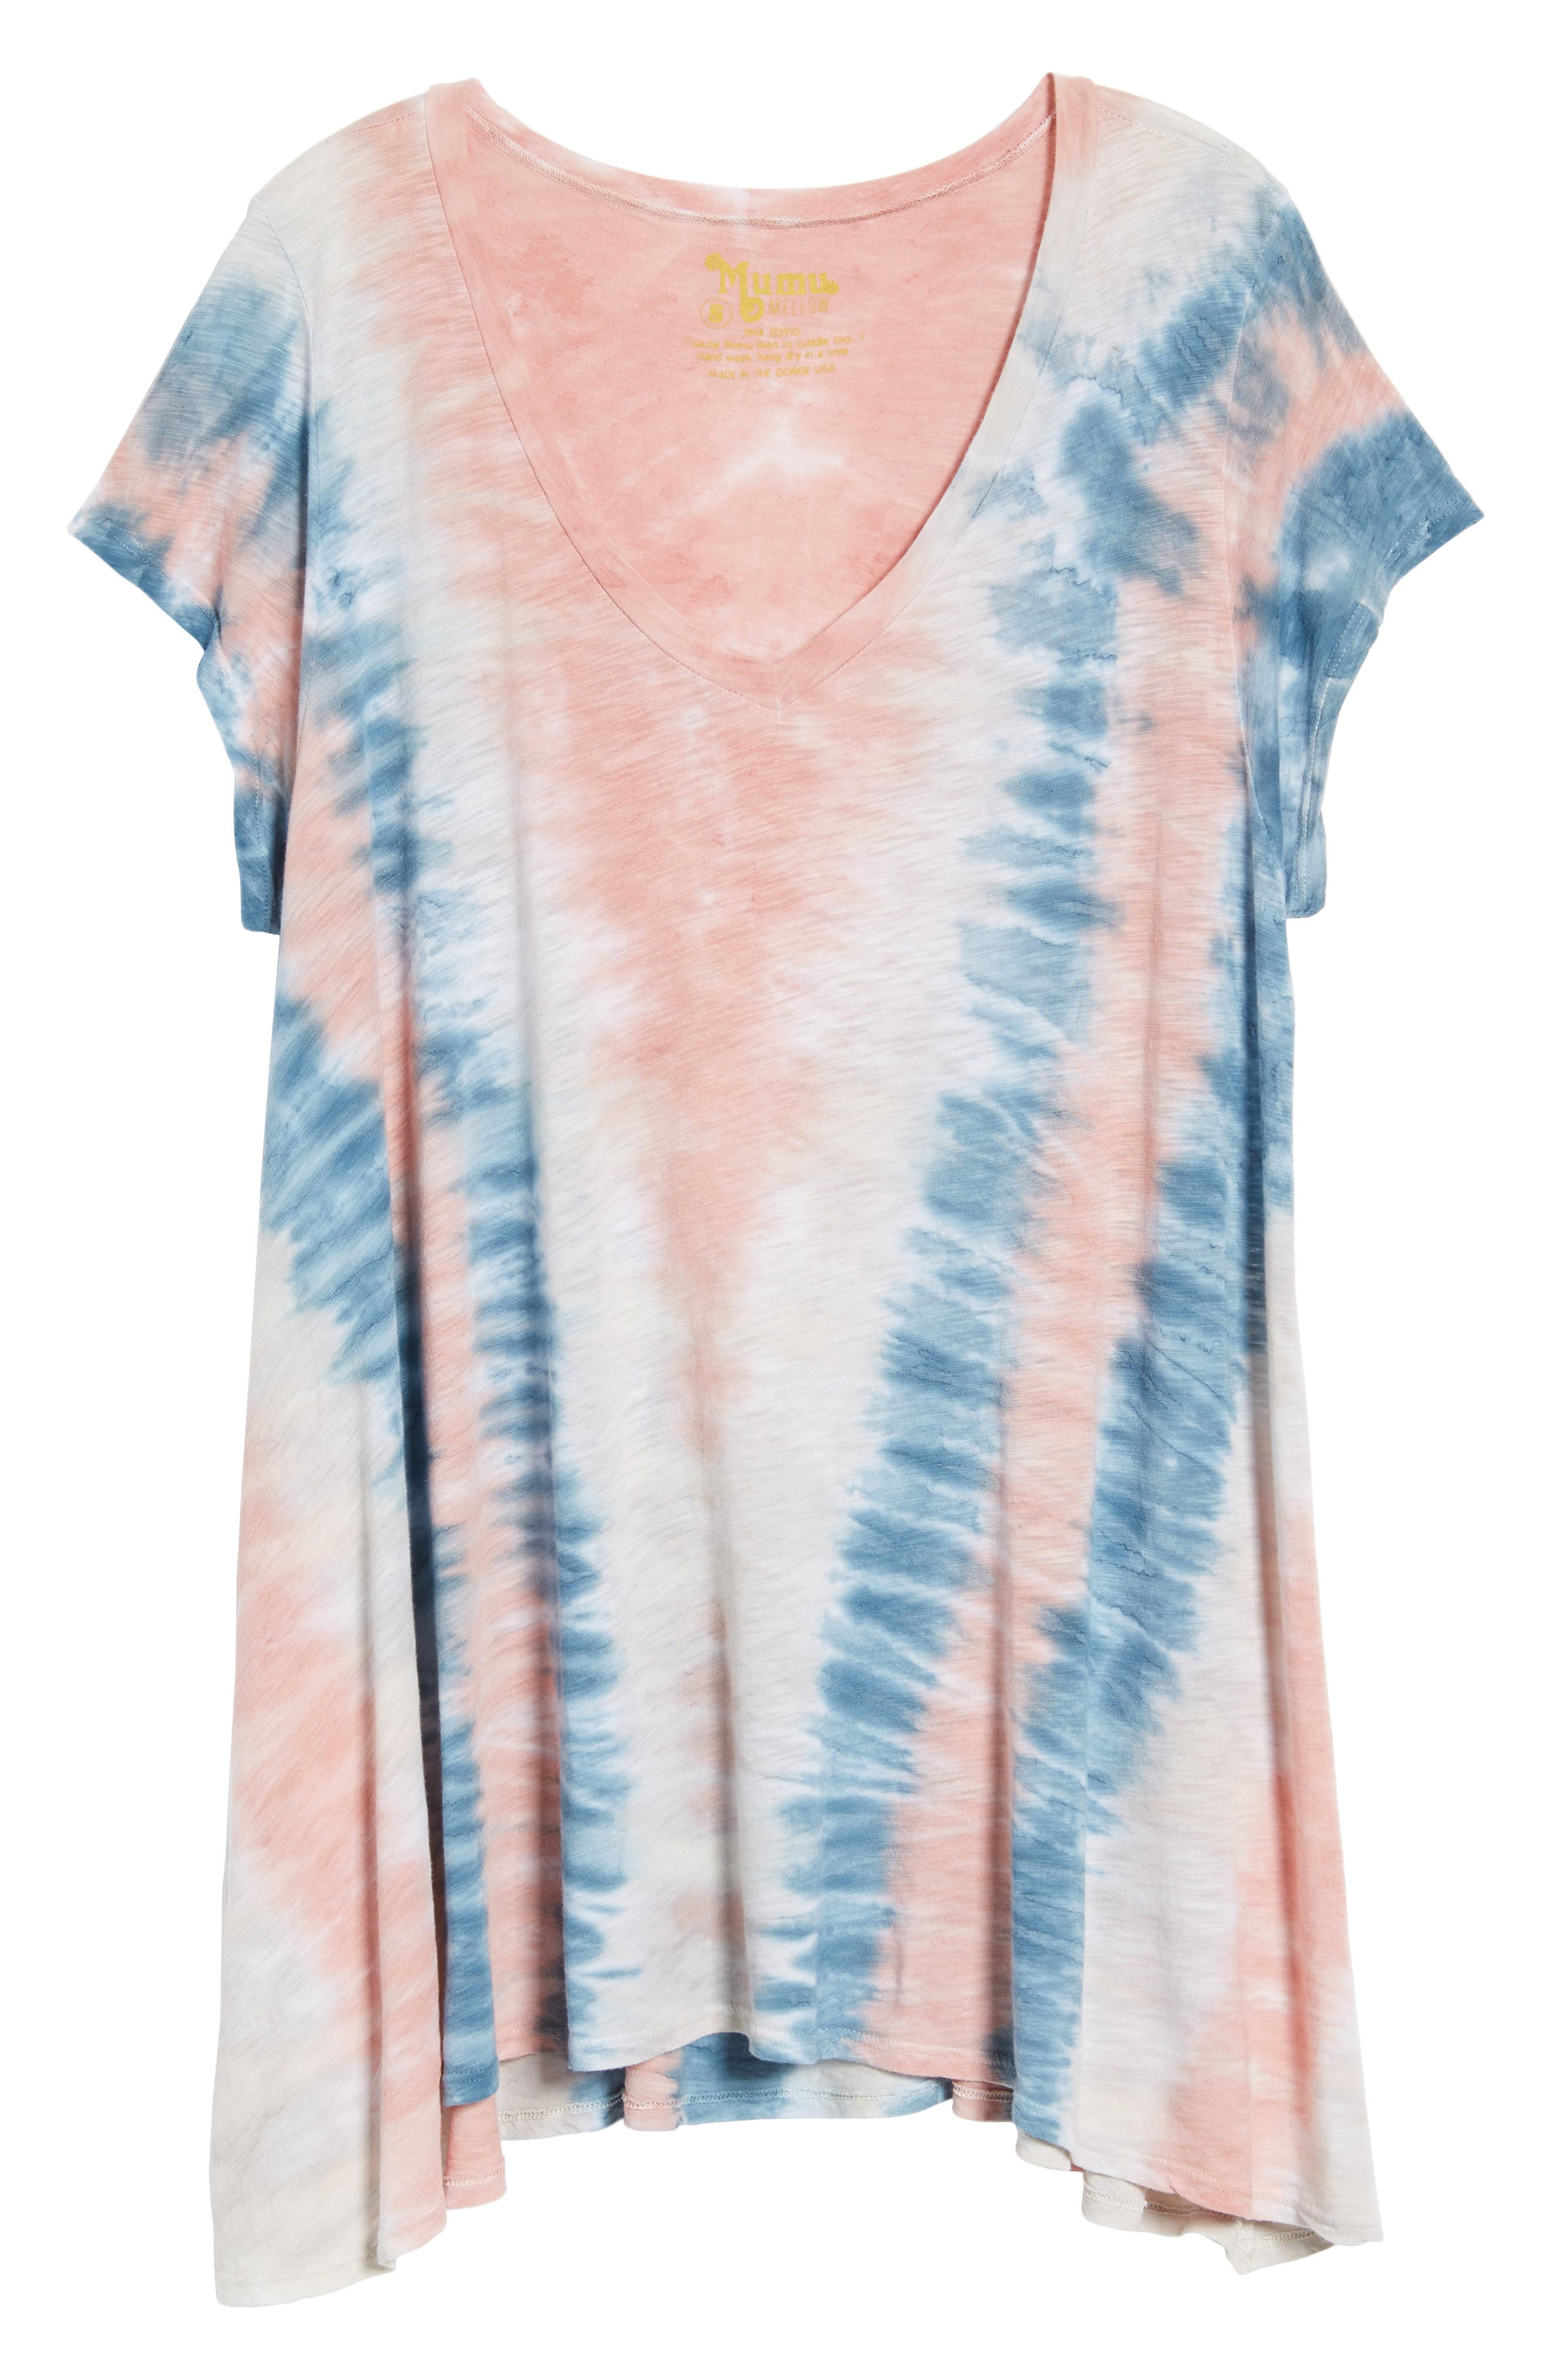 Hetland Swing Tee,                             Alternate thumbnail 7, color,                             Desert Sky Tie Dye